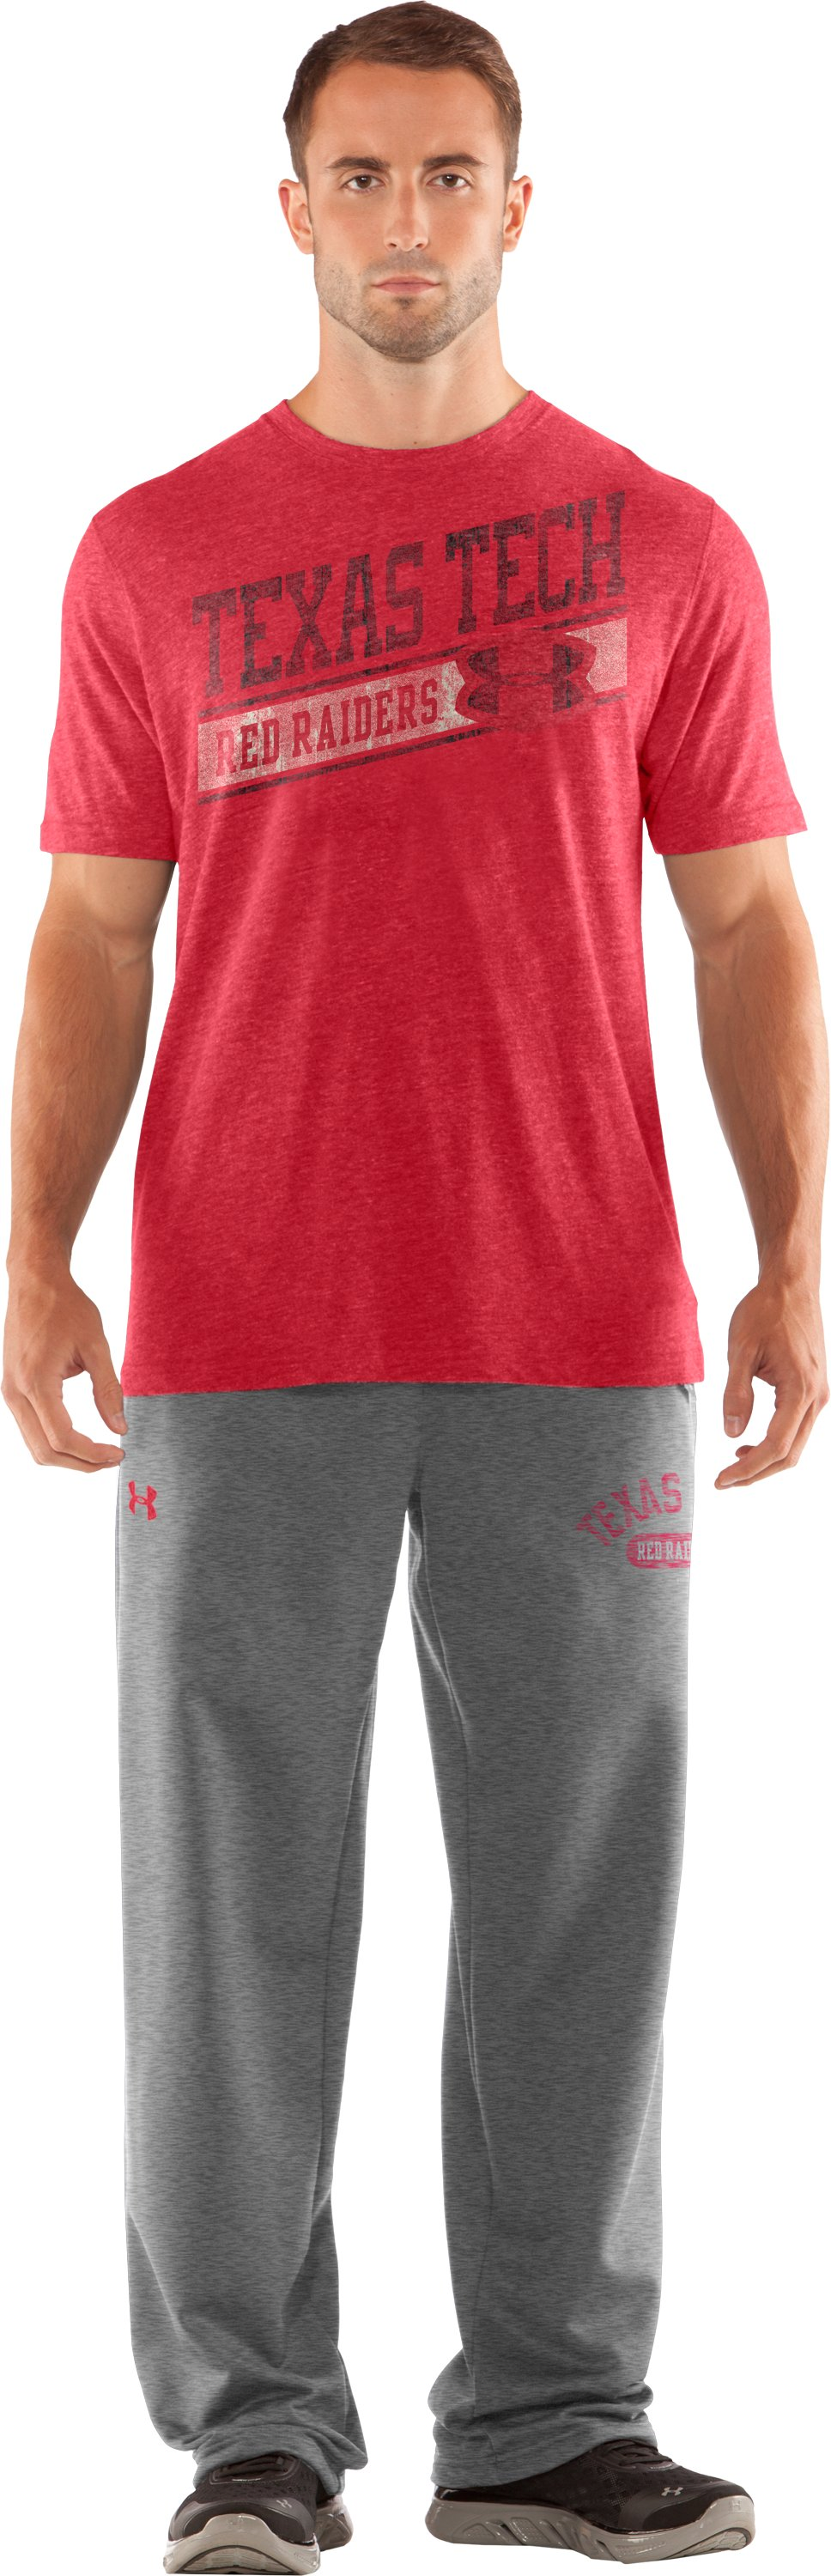 Men's Texas Tech Under Armour® Legacy Pants, True Gray Heather, Front